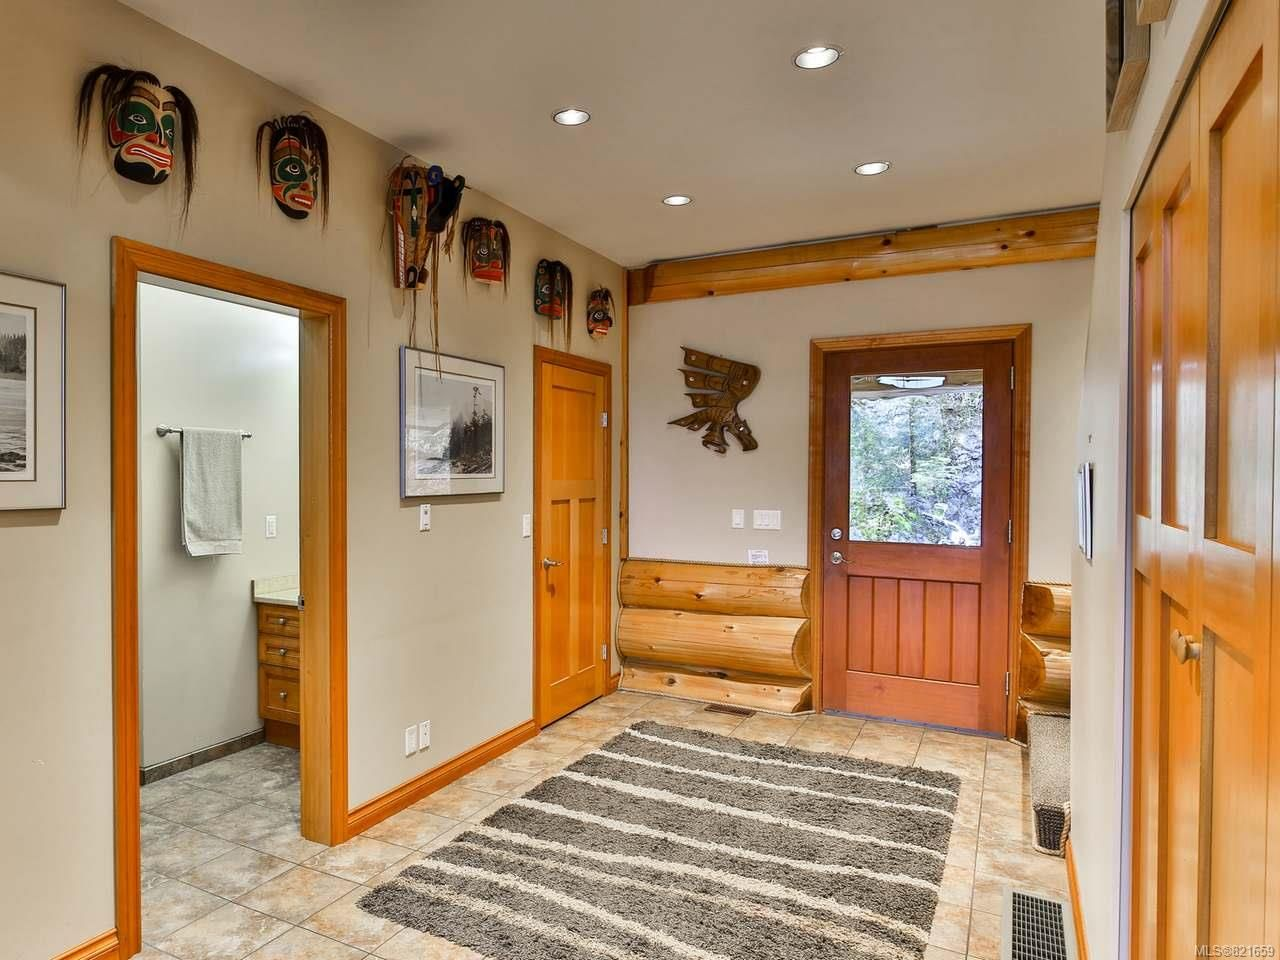 Photo 4: Photos: 1049 Helen Rd in UCLUELET: PA Ucluelet House for sale (Port Alberni)  : MLS®# 821659